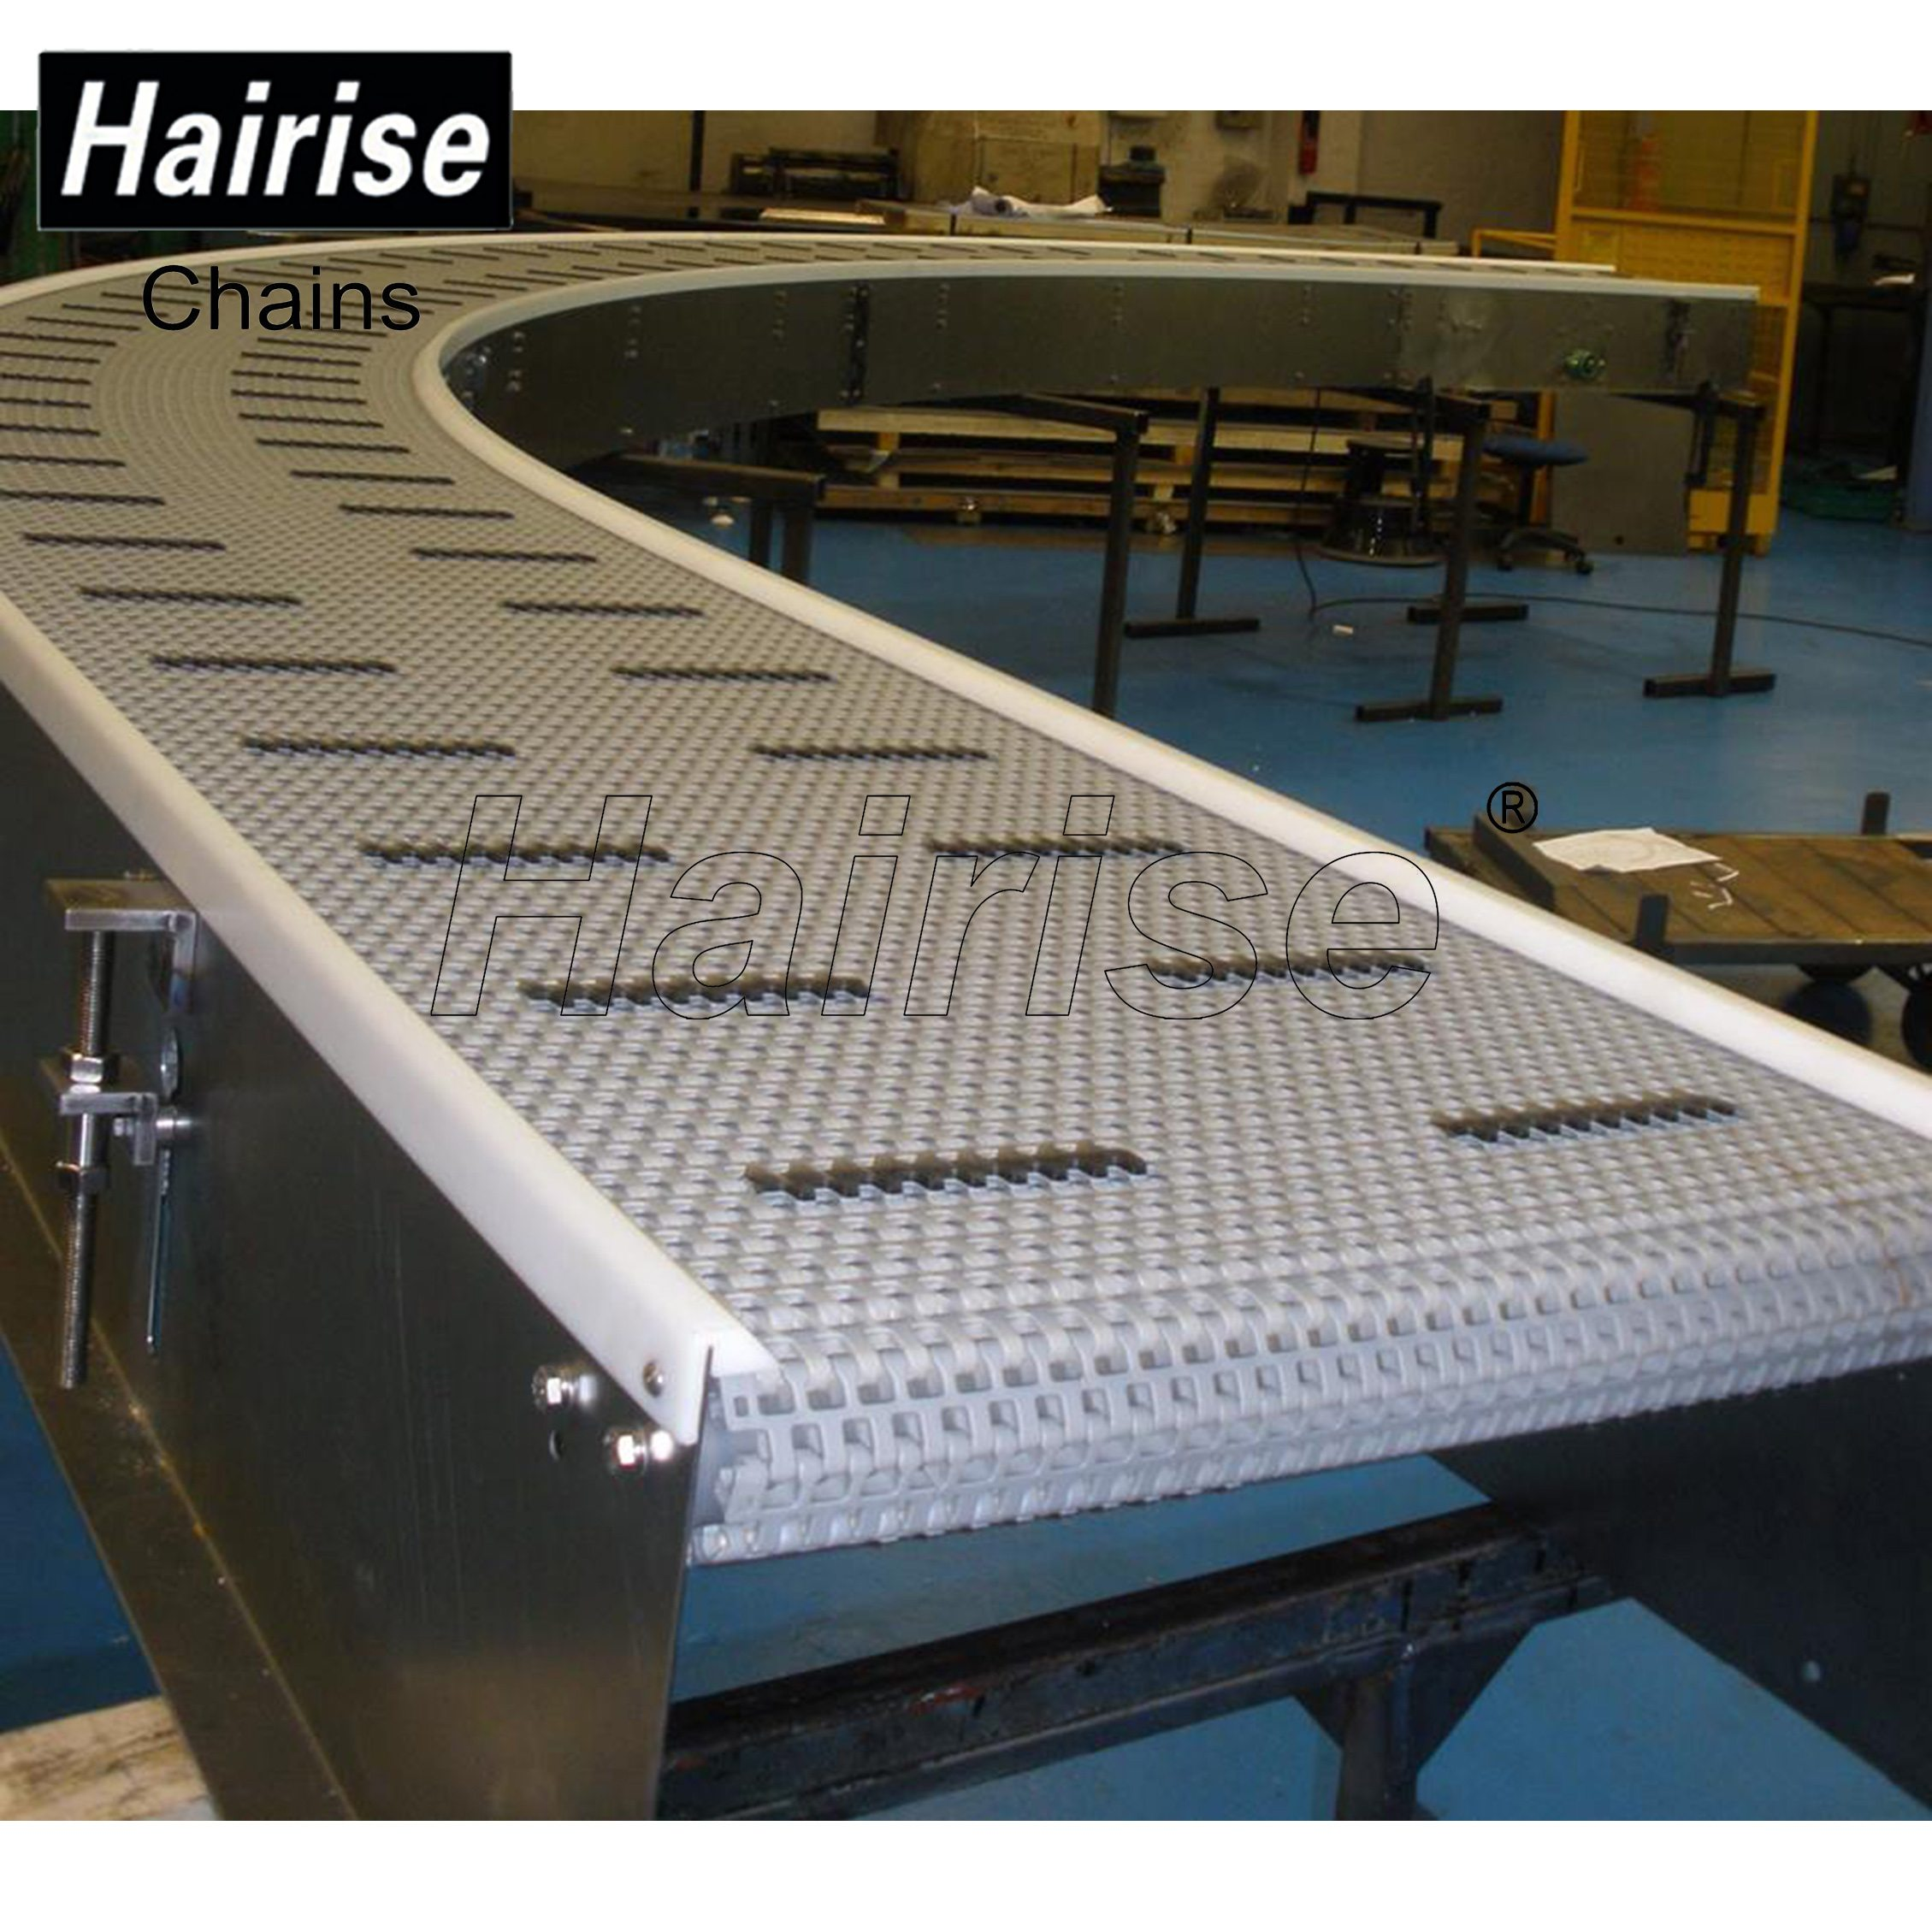 Hairise Curved Conveyors with Modular Belts Featured Image